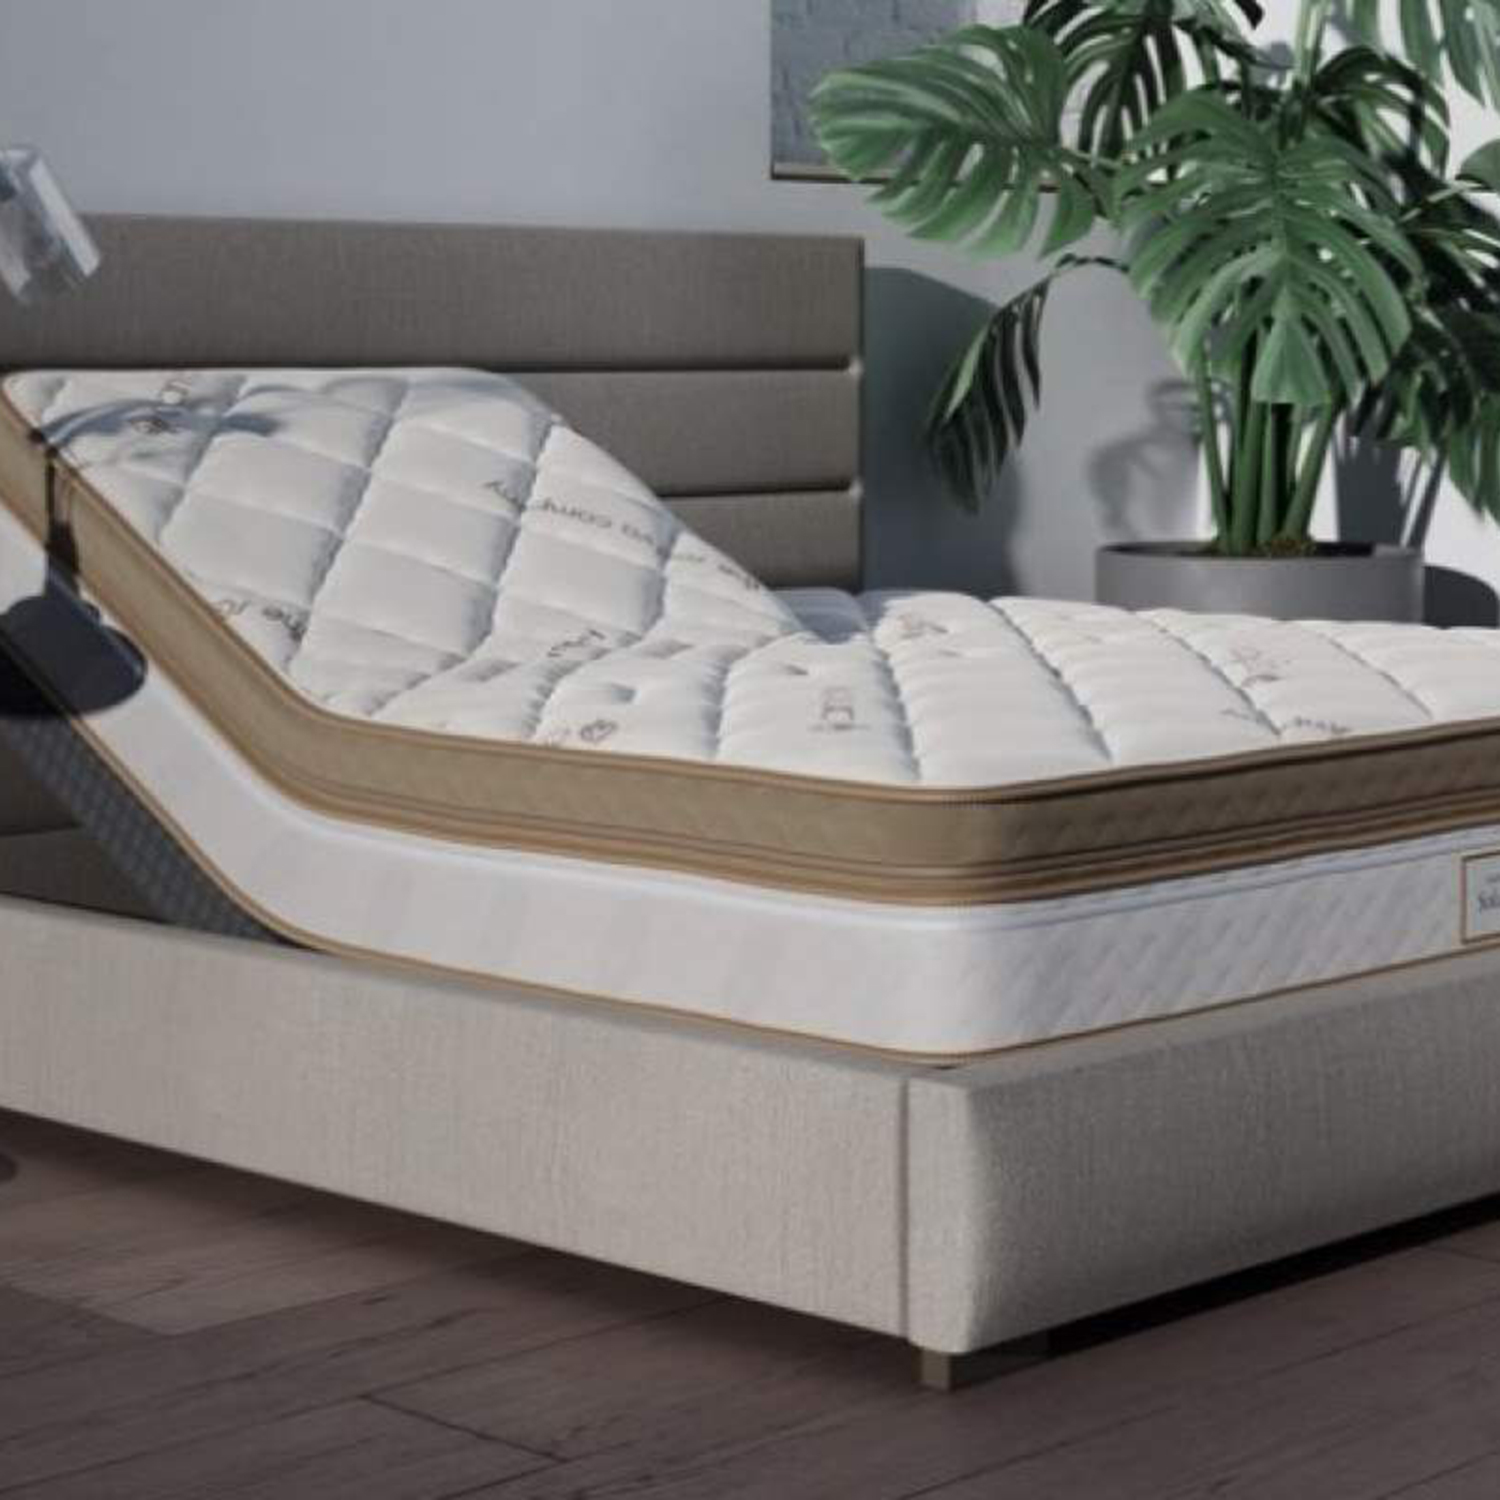 Best Mattresses for Back Pain Saatva Solaire